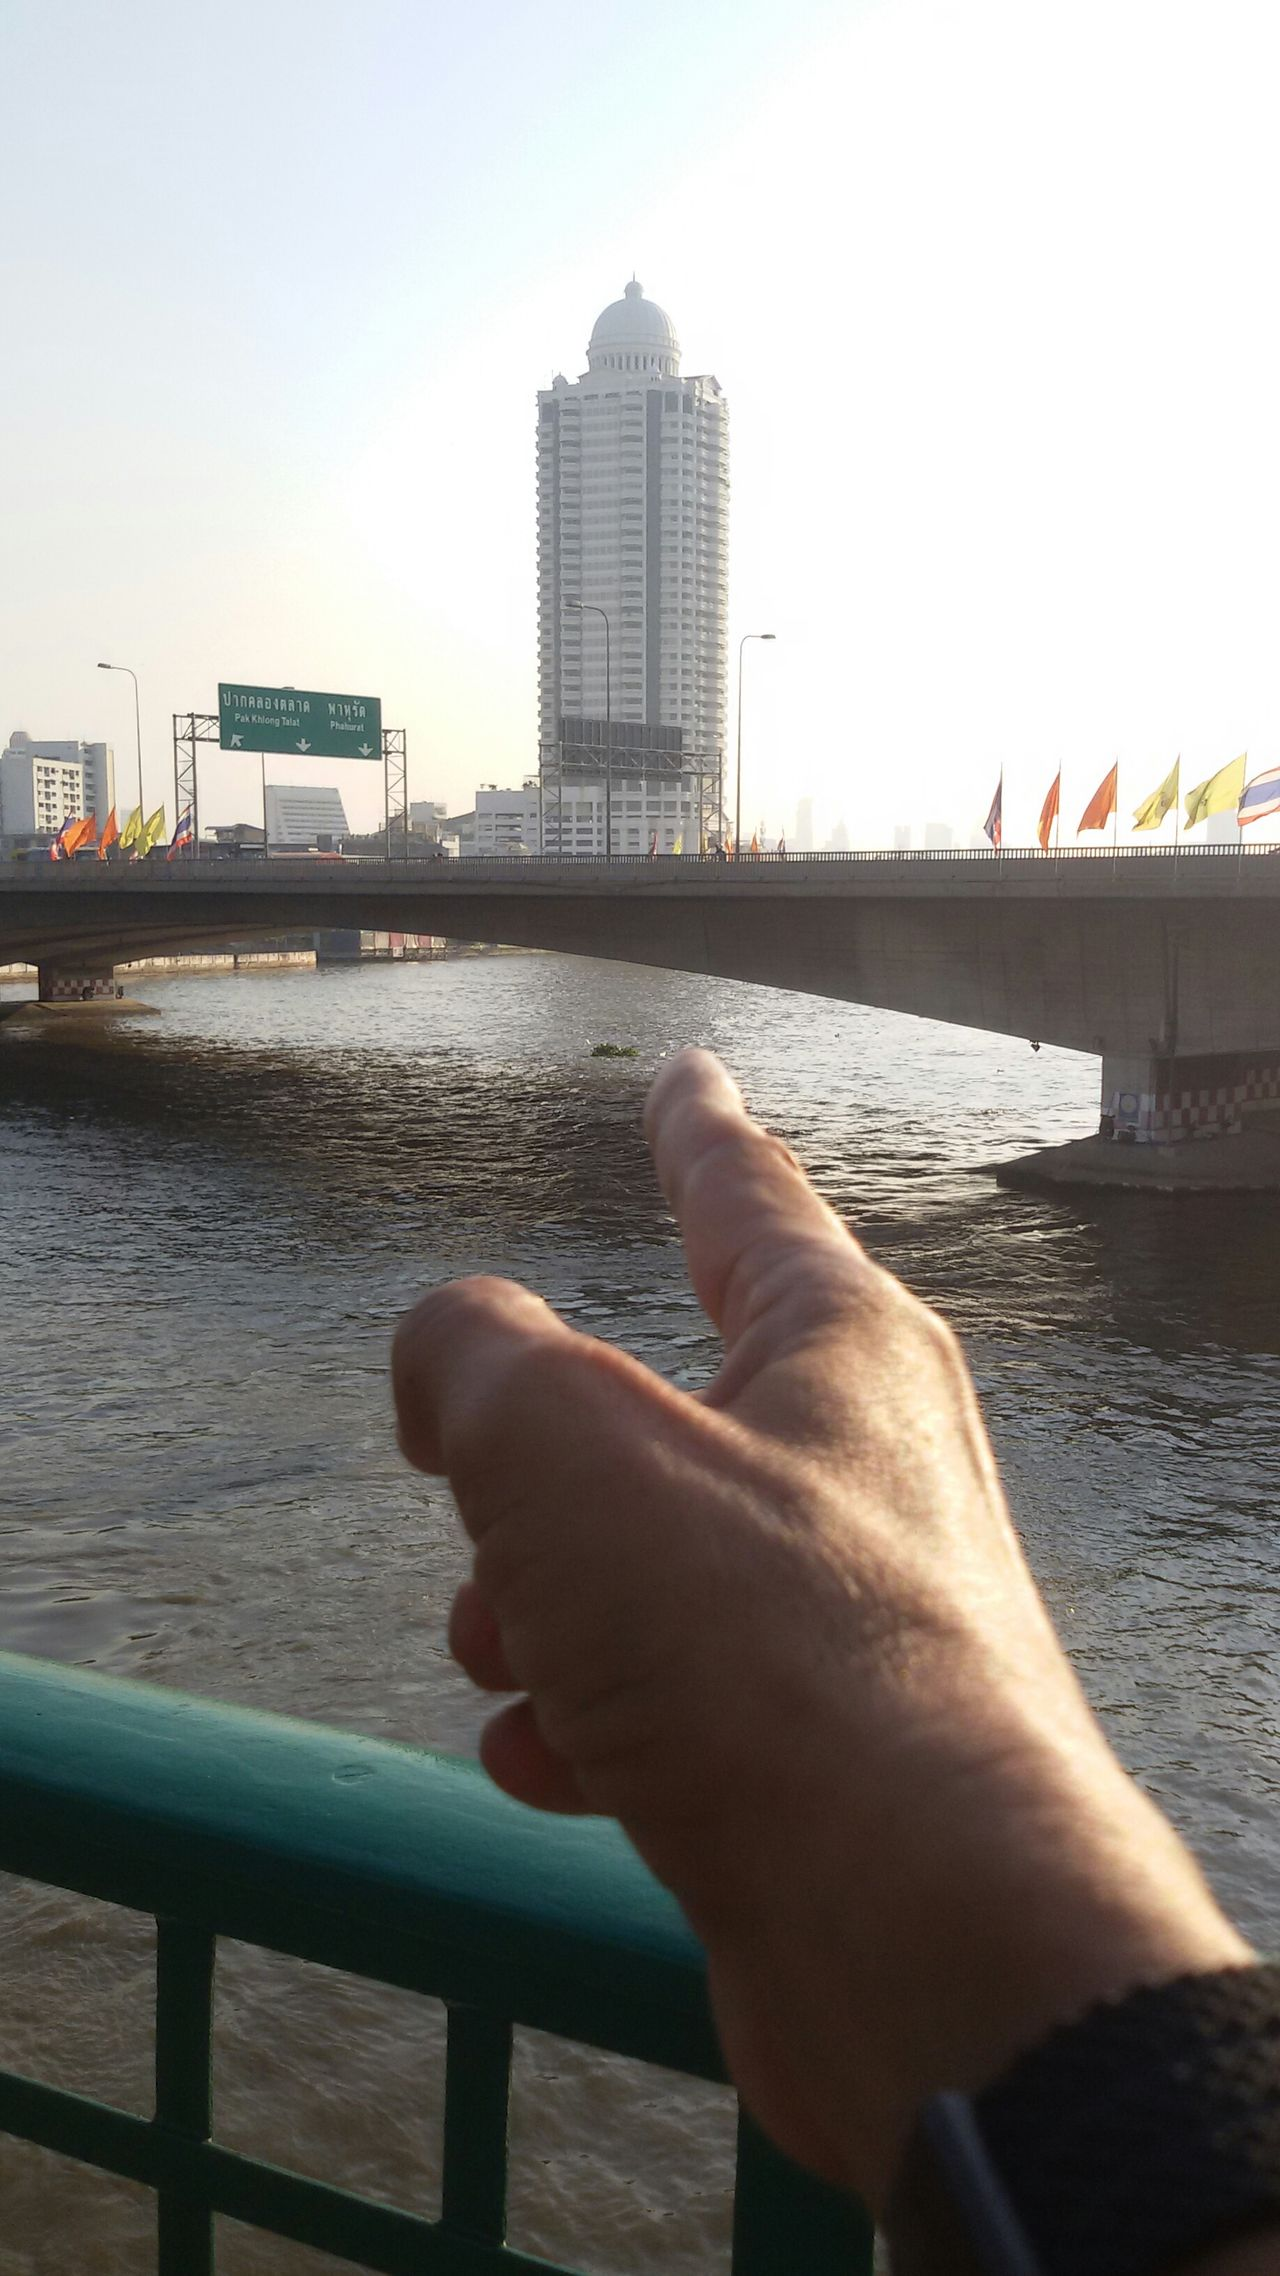 That's great Condominium, Riverside Chao Phraya river, The Memorial Bridge, architecture, Lanscape, perspectives, Getting In Spired. Taking Photos .